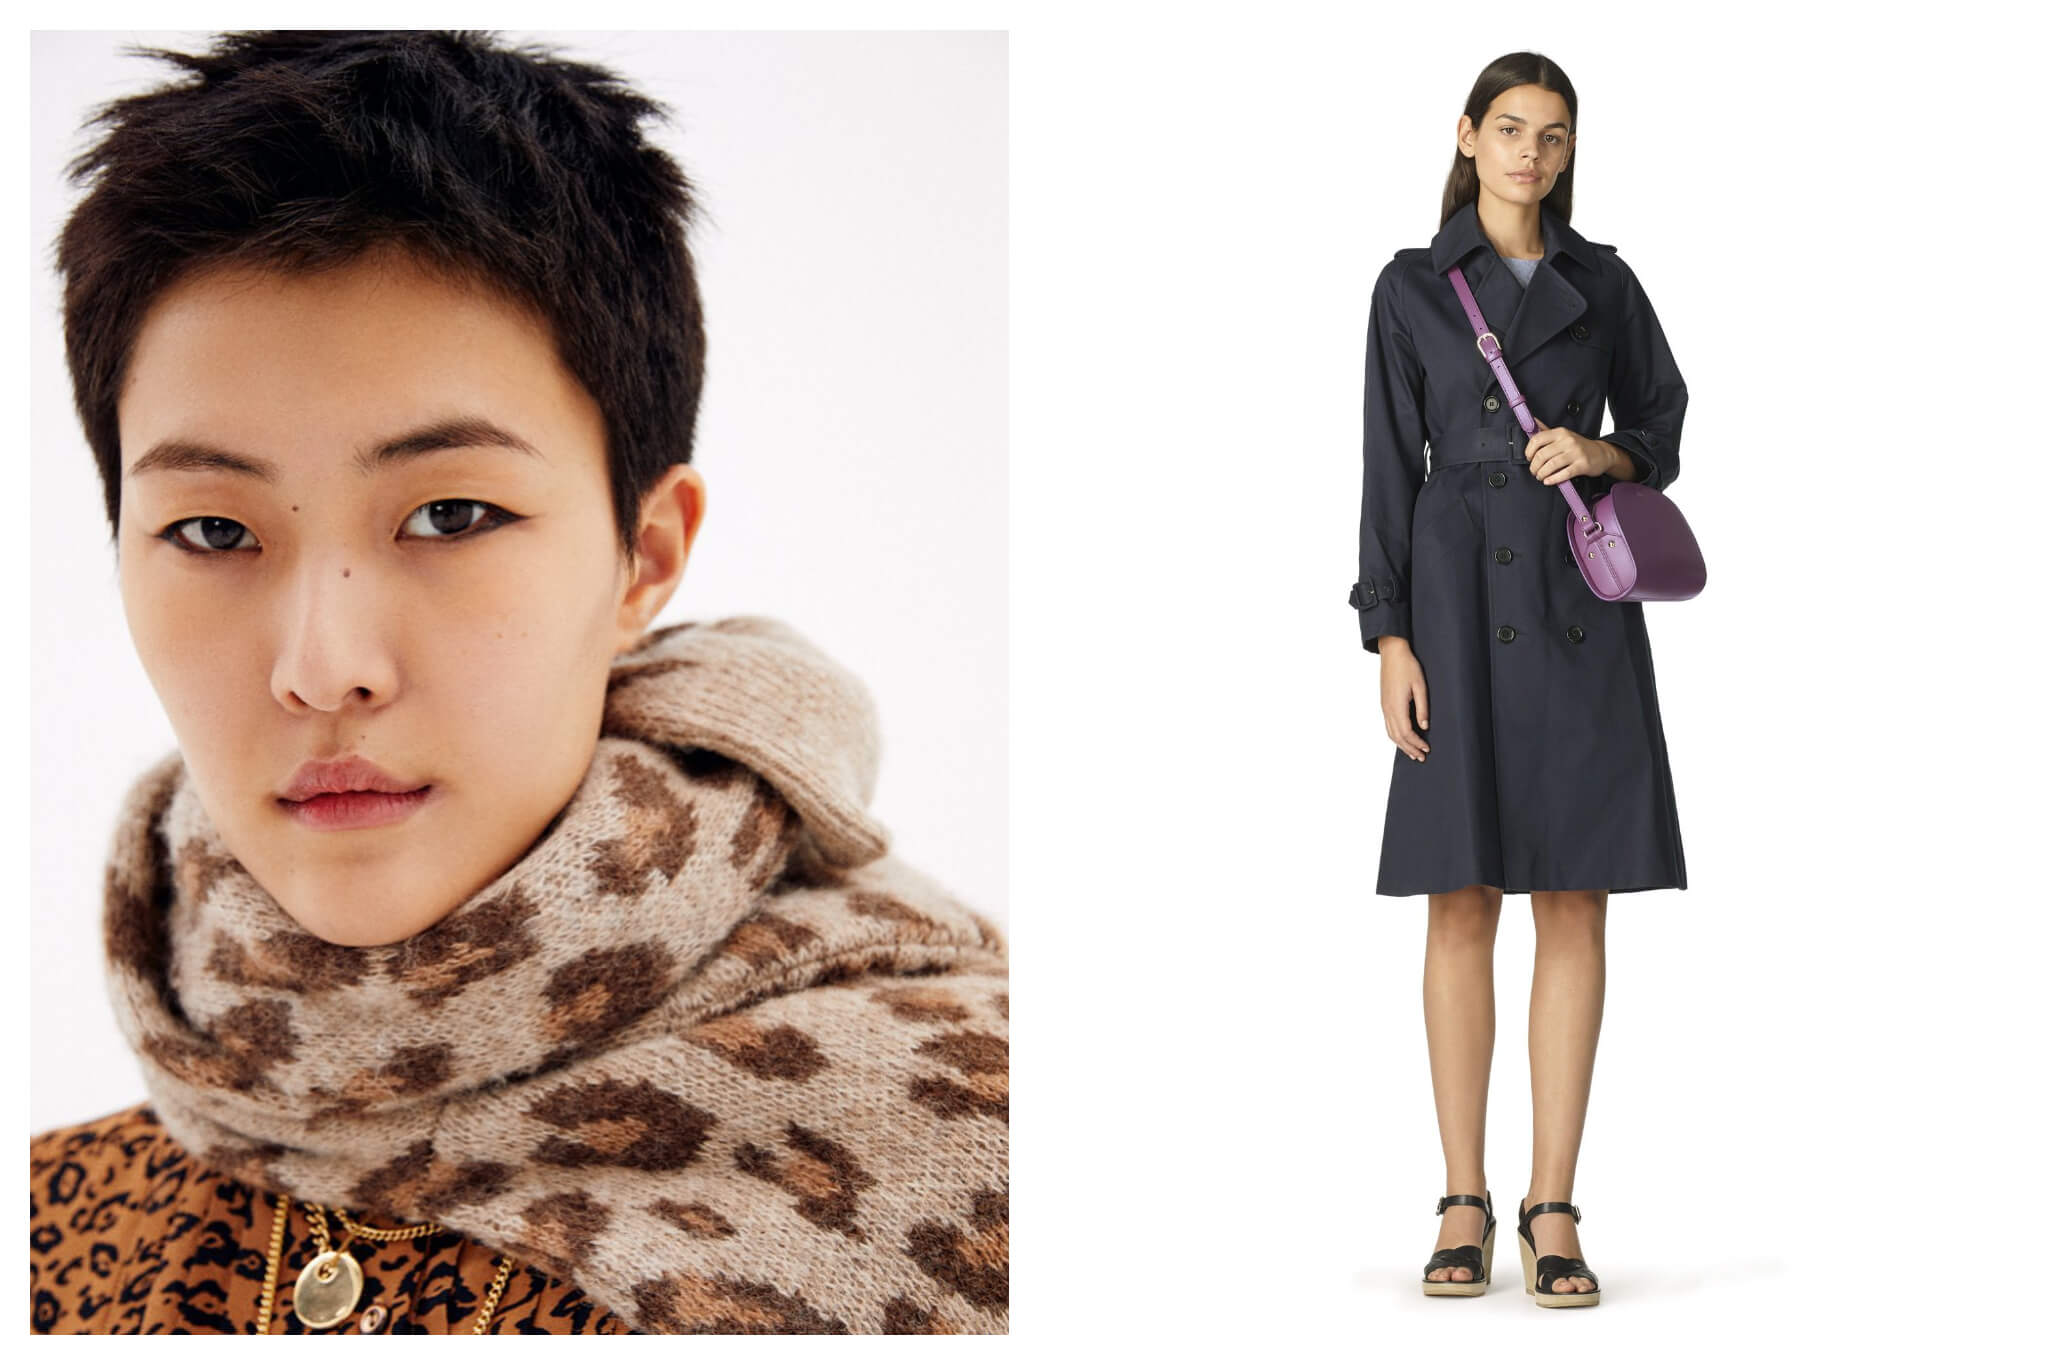 Left: A female model with short black hair wears winter scarf and sweater in contrasting animal prints. Right: A female with long black hair models a black trench coat with a purple handbag draped across her diagonally.